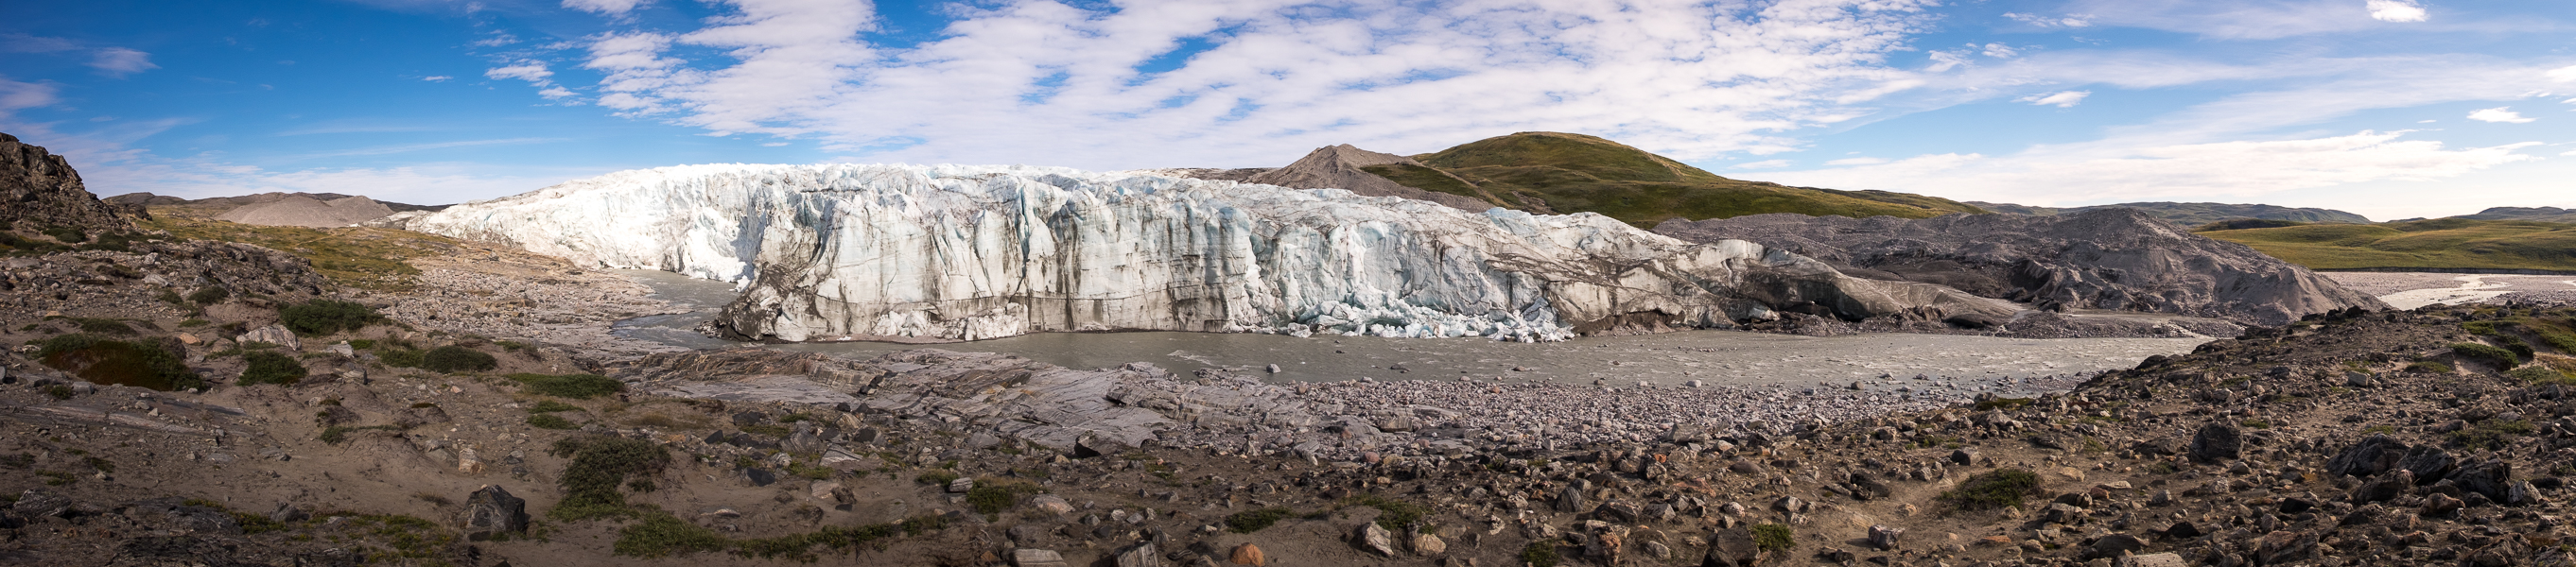 Panorama of the Russell Glacier near Kangerlussuaq, West Greenland